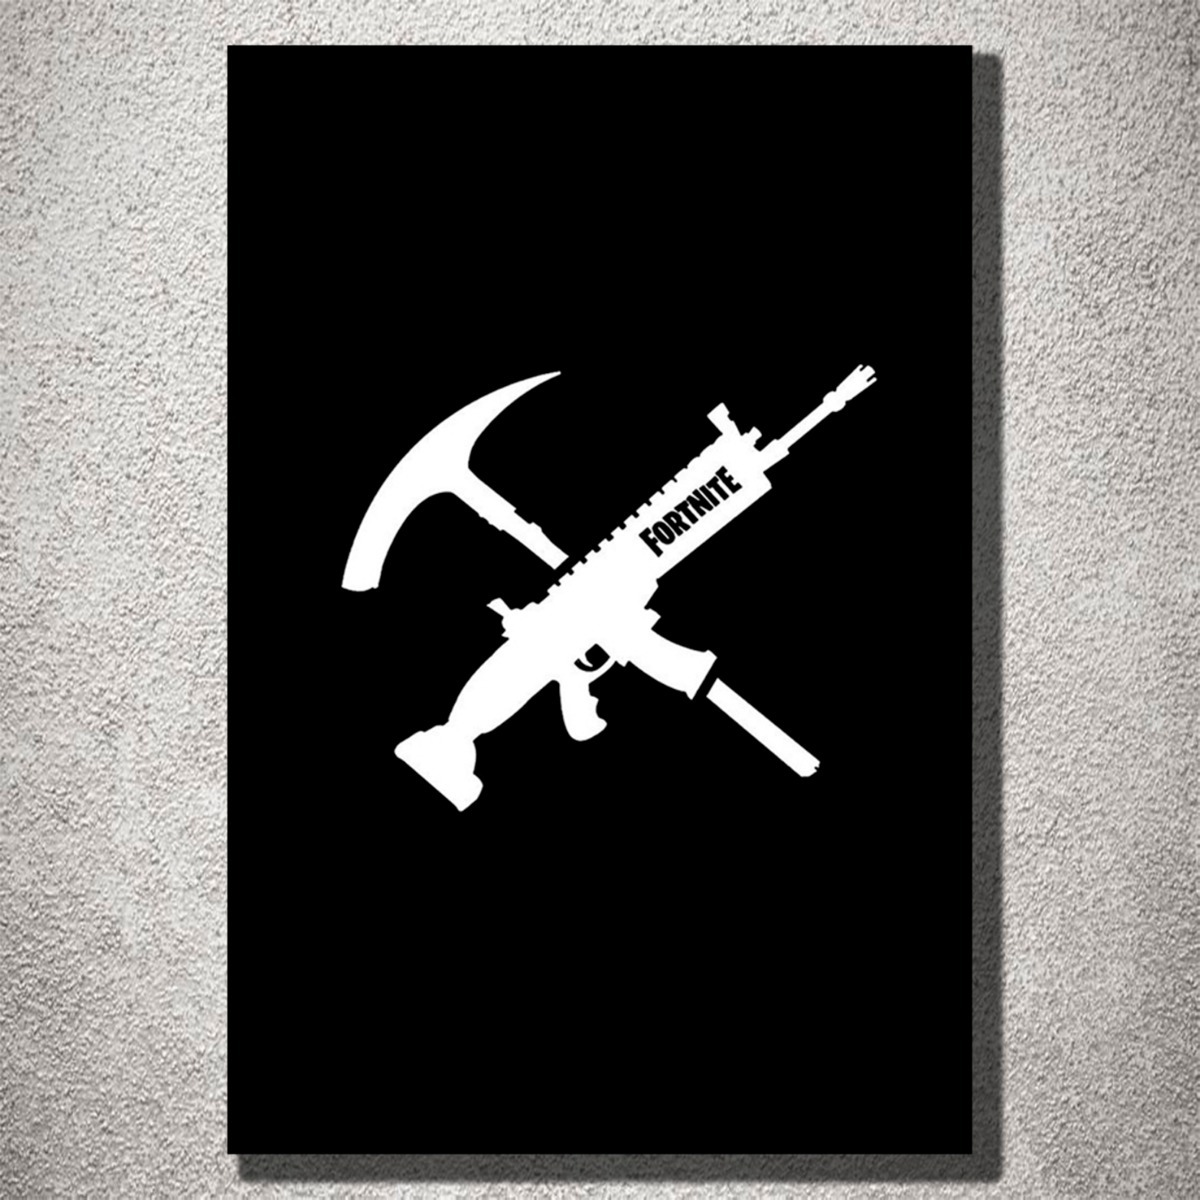 Armas Decorativas Placa Decorativa Fortnite Logo Com Armas Decorativas Mdf